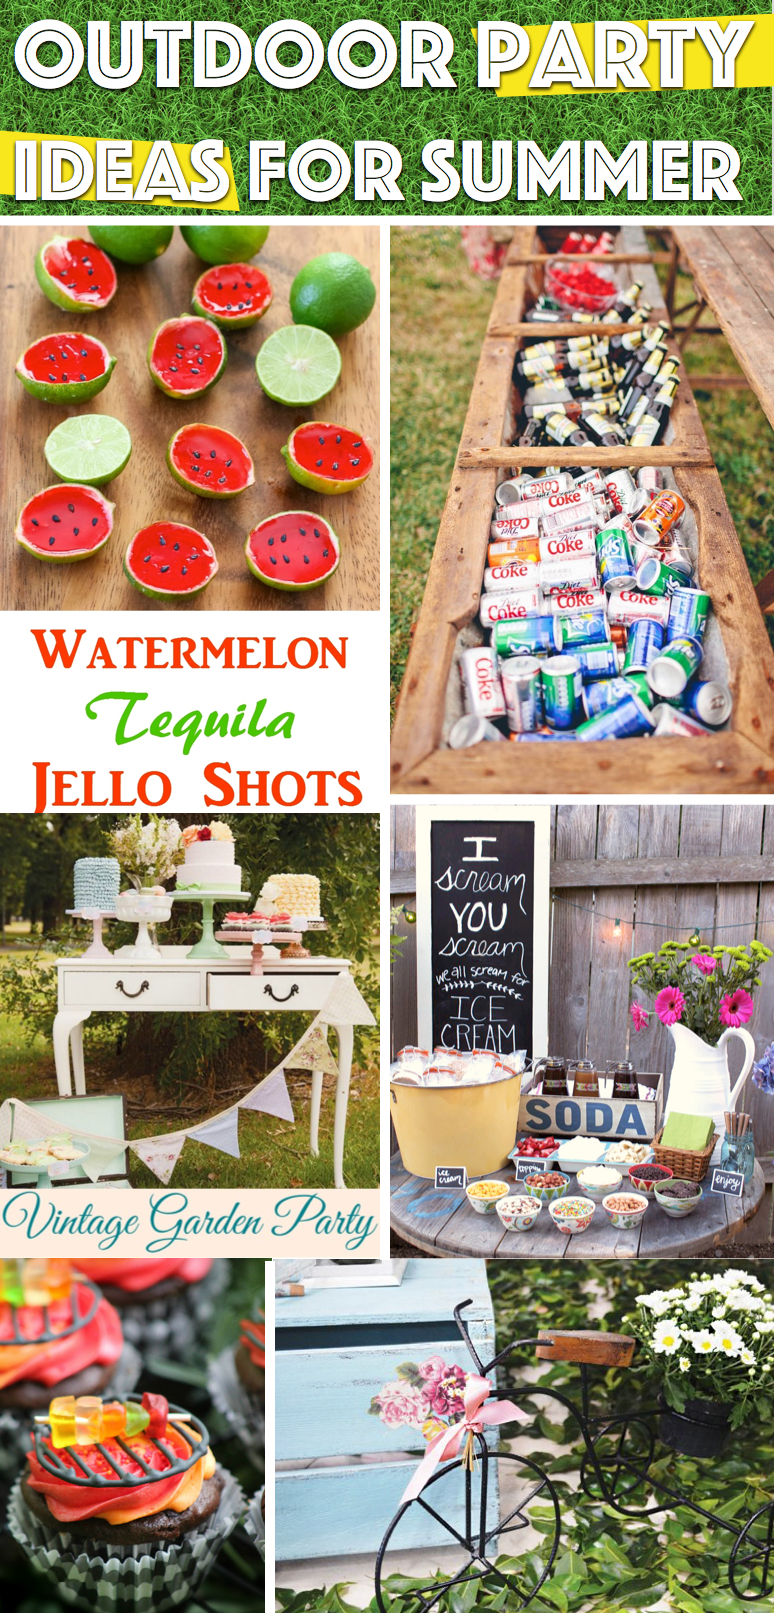 25 Outdoor Party Ideas For Summer You Need For Creating Unforgettable Celebrations Cute Diy Projects